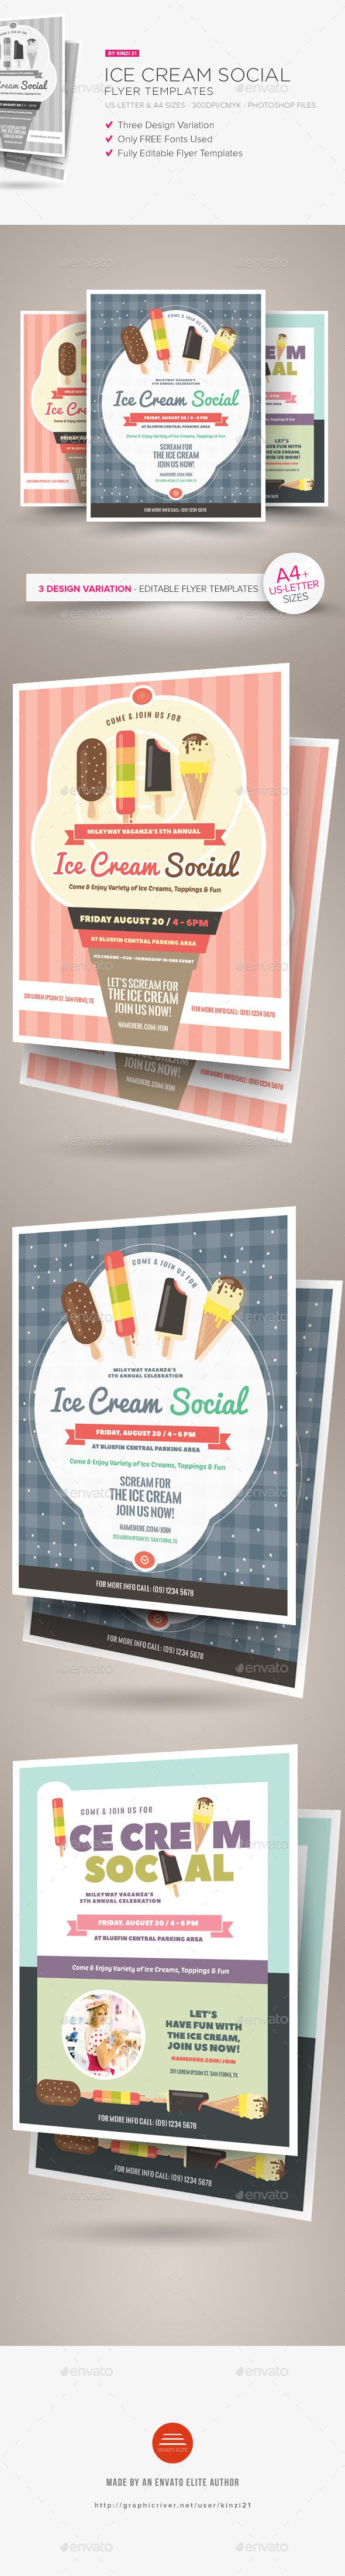 Poster design template psd - Fantastic Psd Ice Cream Social Flyer Templates Only Available Here Http